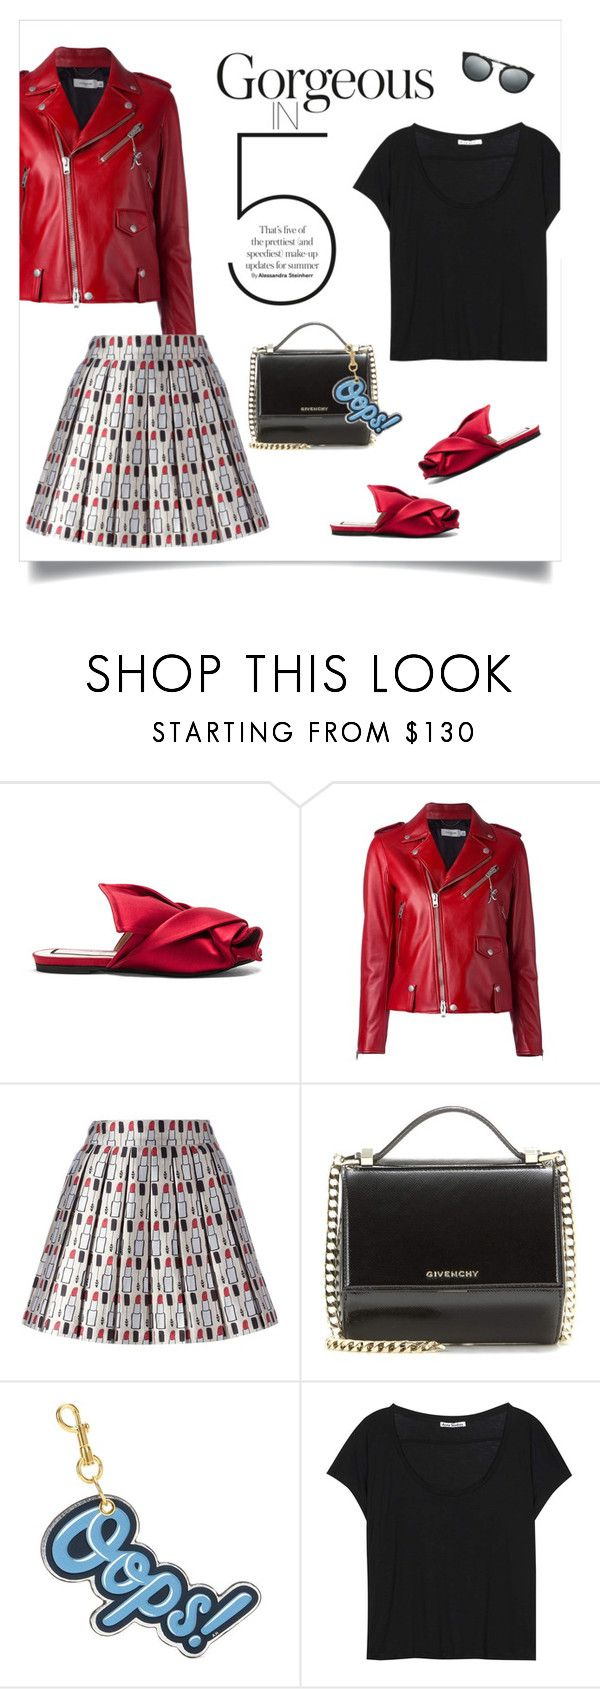 """""""Slip 'Em On: Mules"""" by sophiek82 ❤ liked on Polyvore featuring N°21, Coach, Alice + Olivia, Givenchy, Anya Hindmarch, Acne Studios and Prada"""